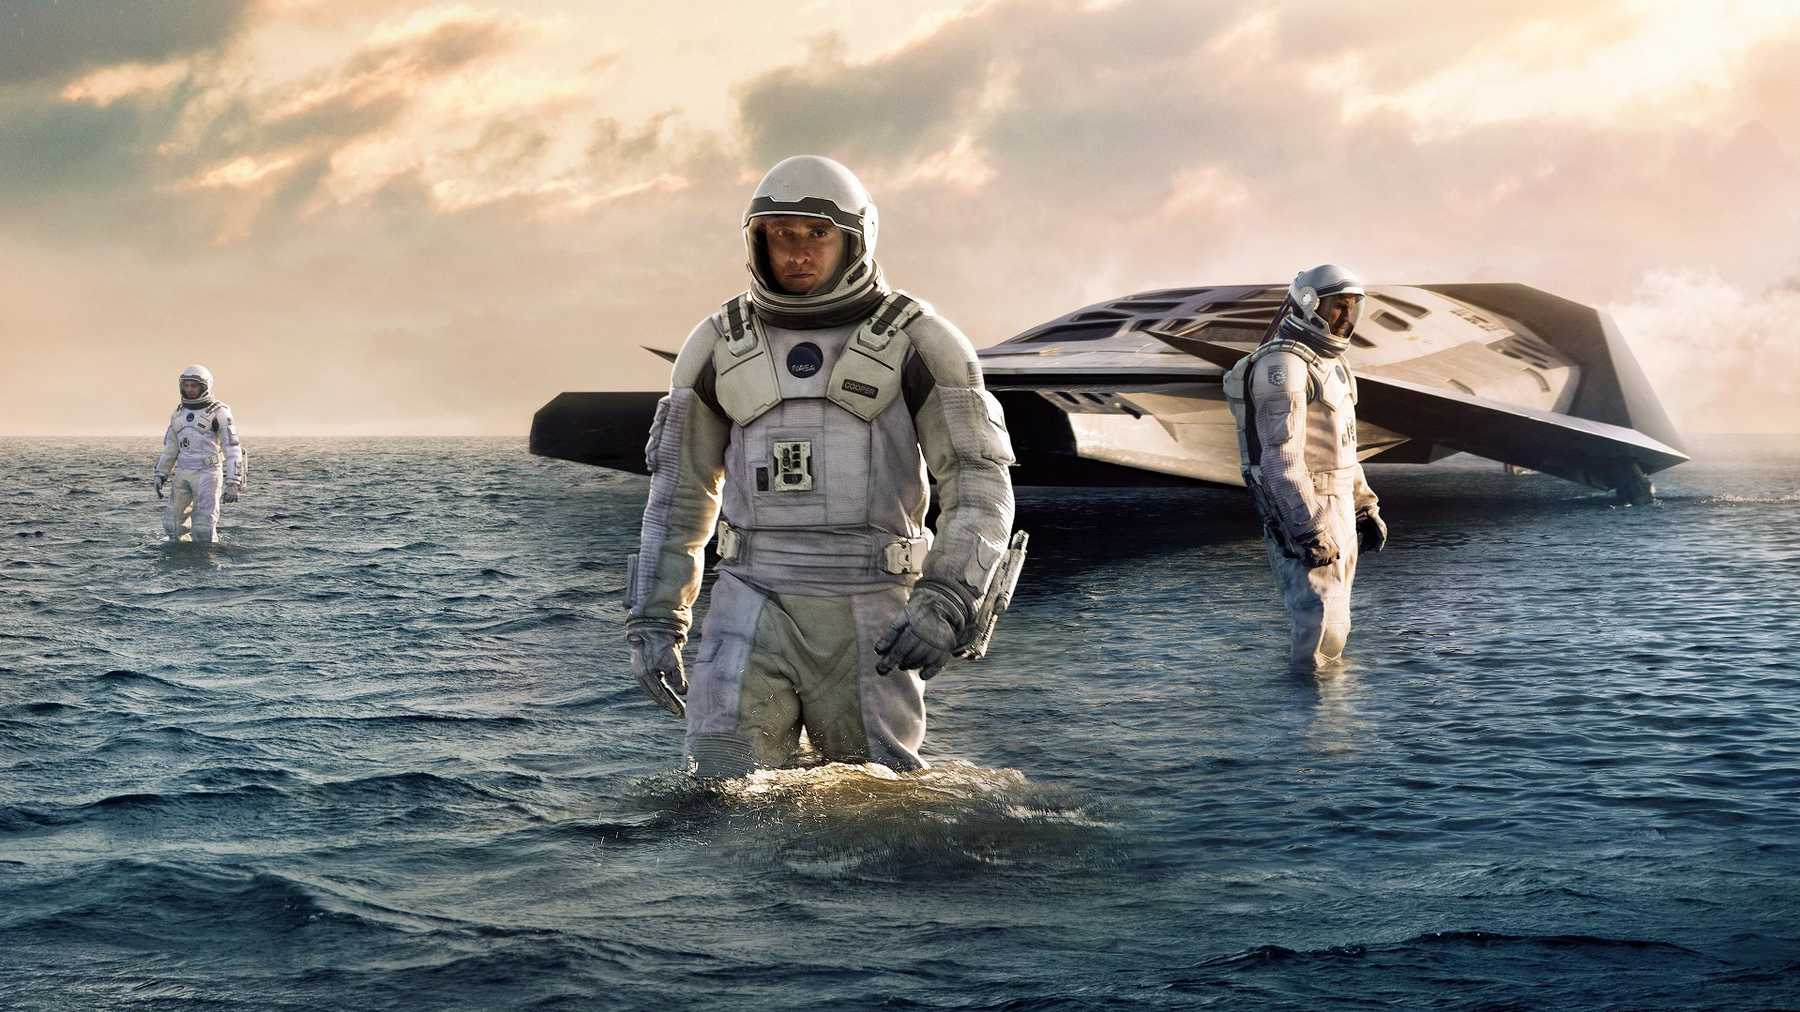 The Best Movies Like Interstellar That Will Blow Your Mind